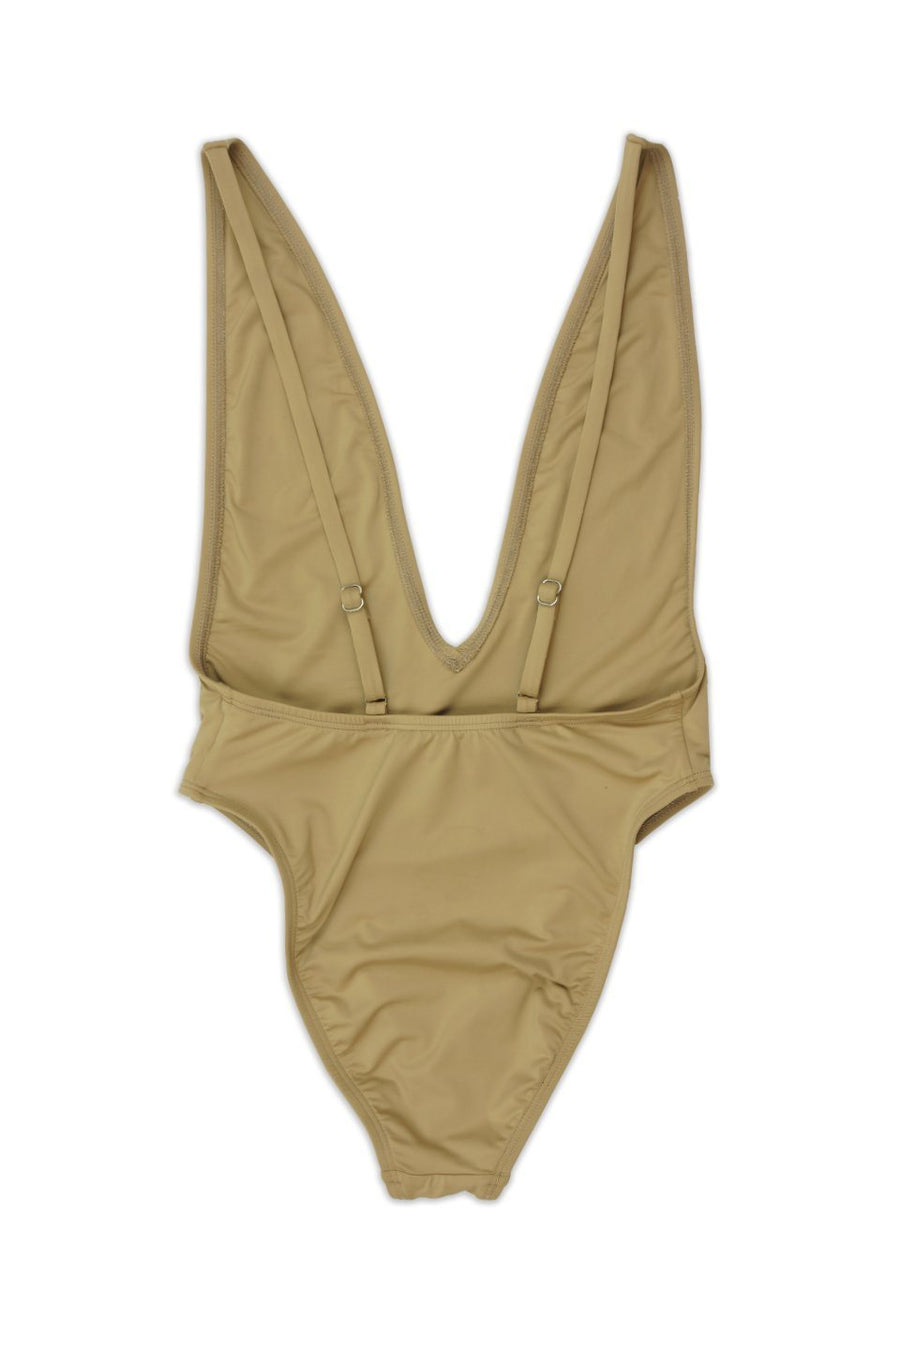 Beige High Cut Low V-Neck One Piece Front - Dippin' Daisy's Swimwear